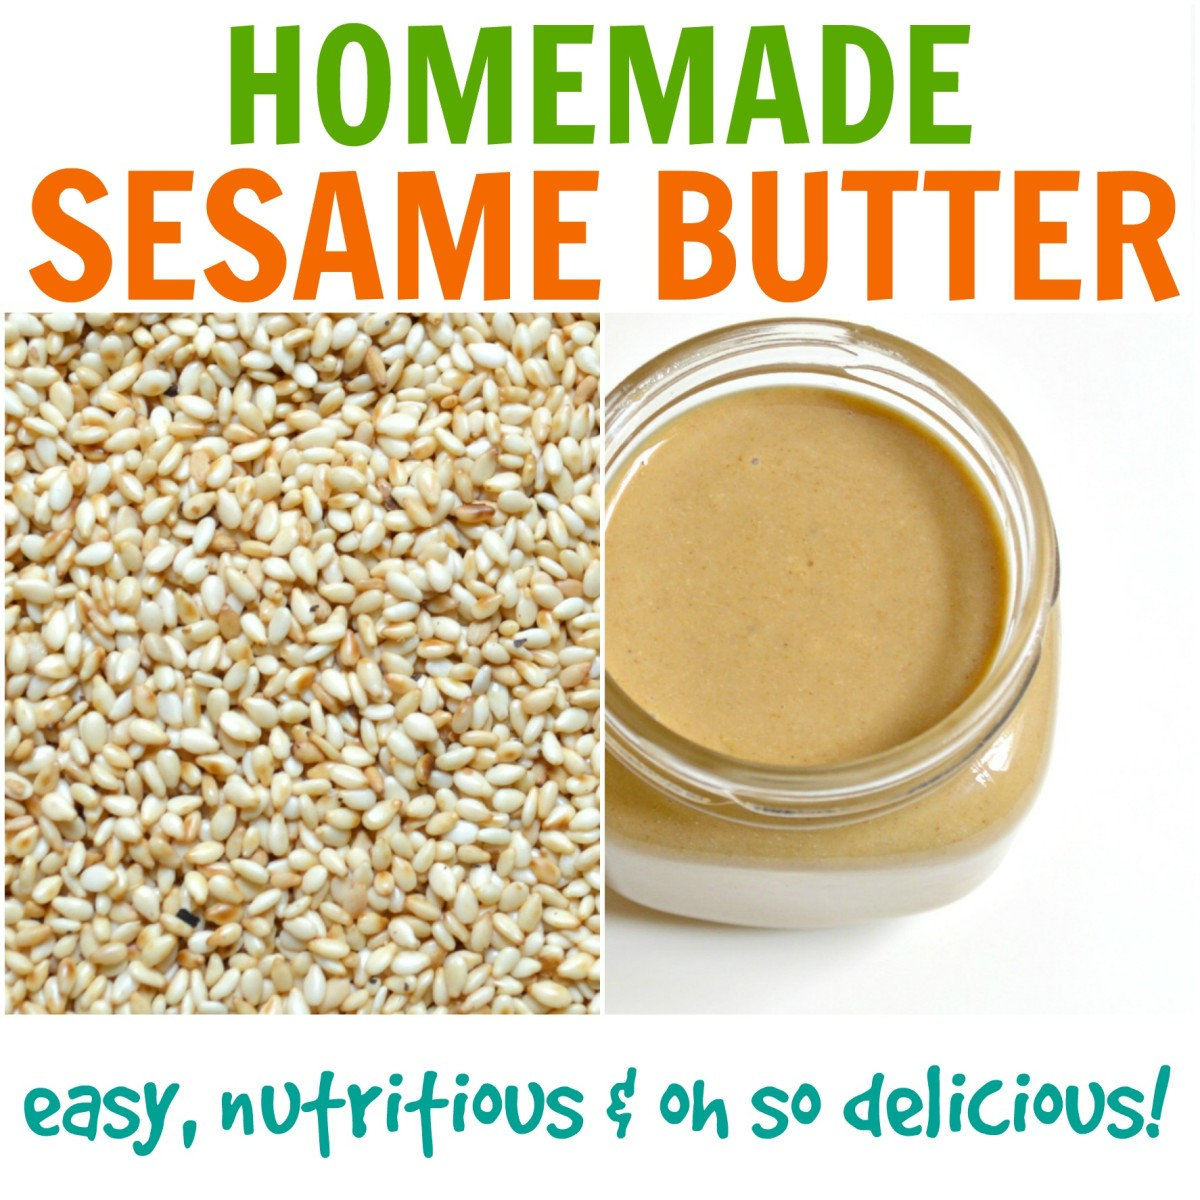 How to Make Sesame Butter at Home